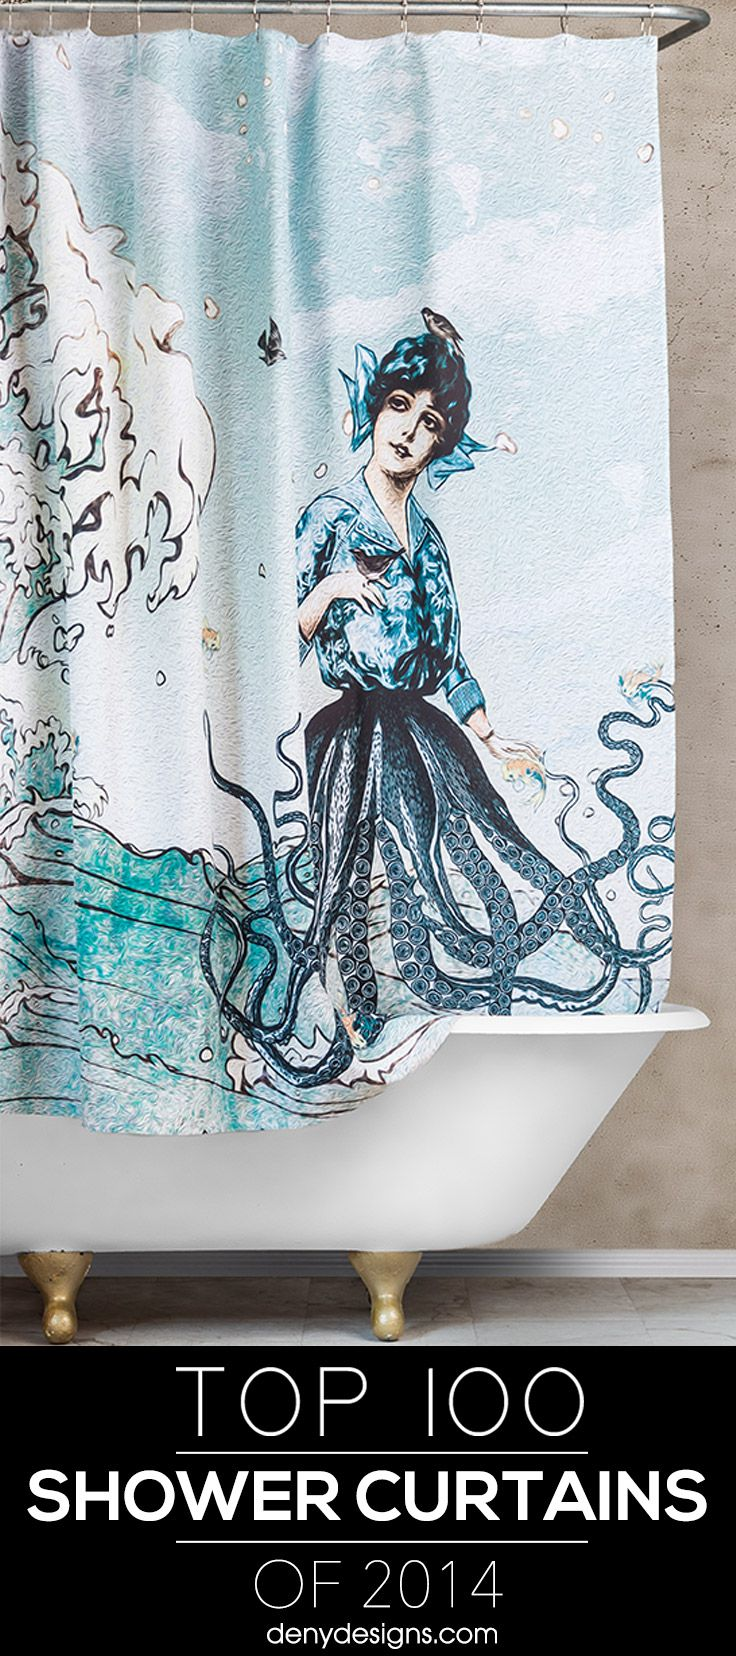 Easily transform the bathroom with one of the Top 100 Shower Curtains of 2014!